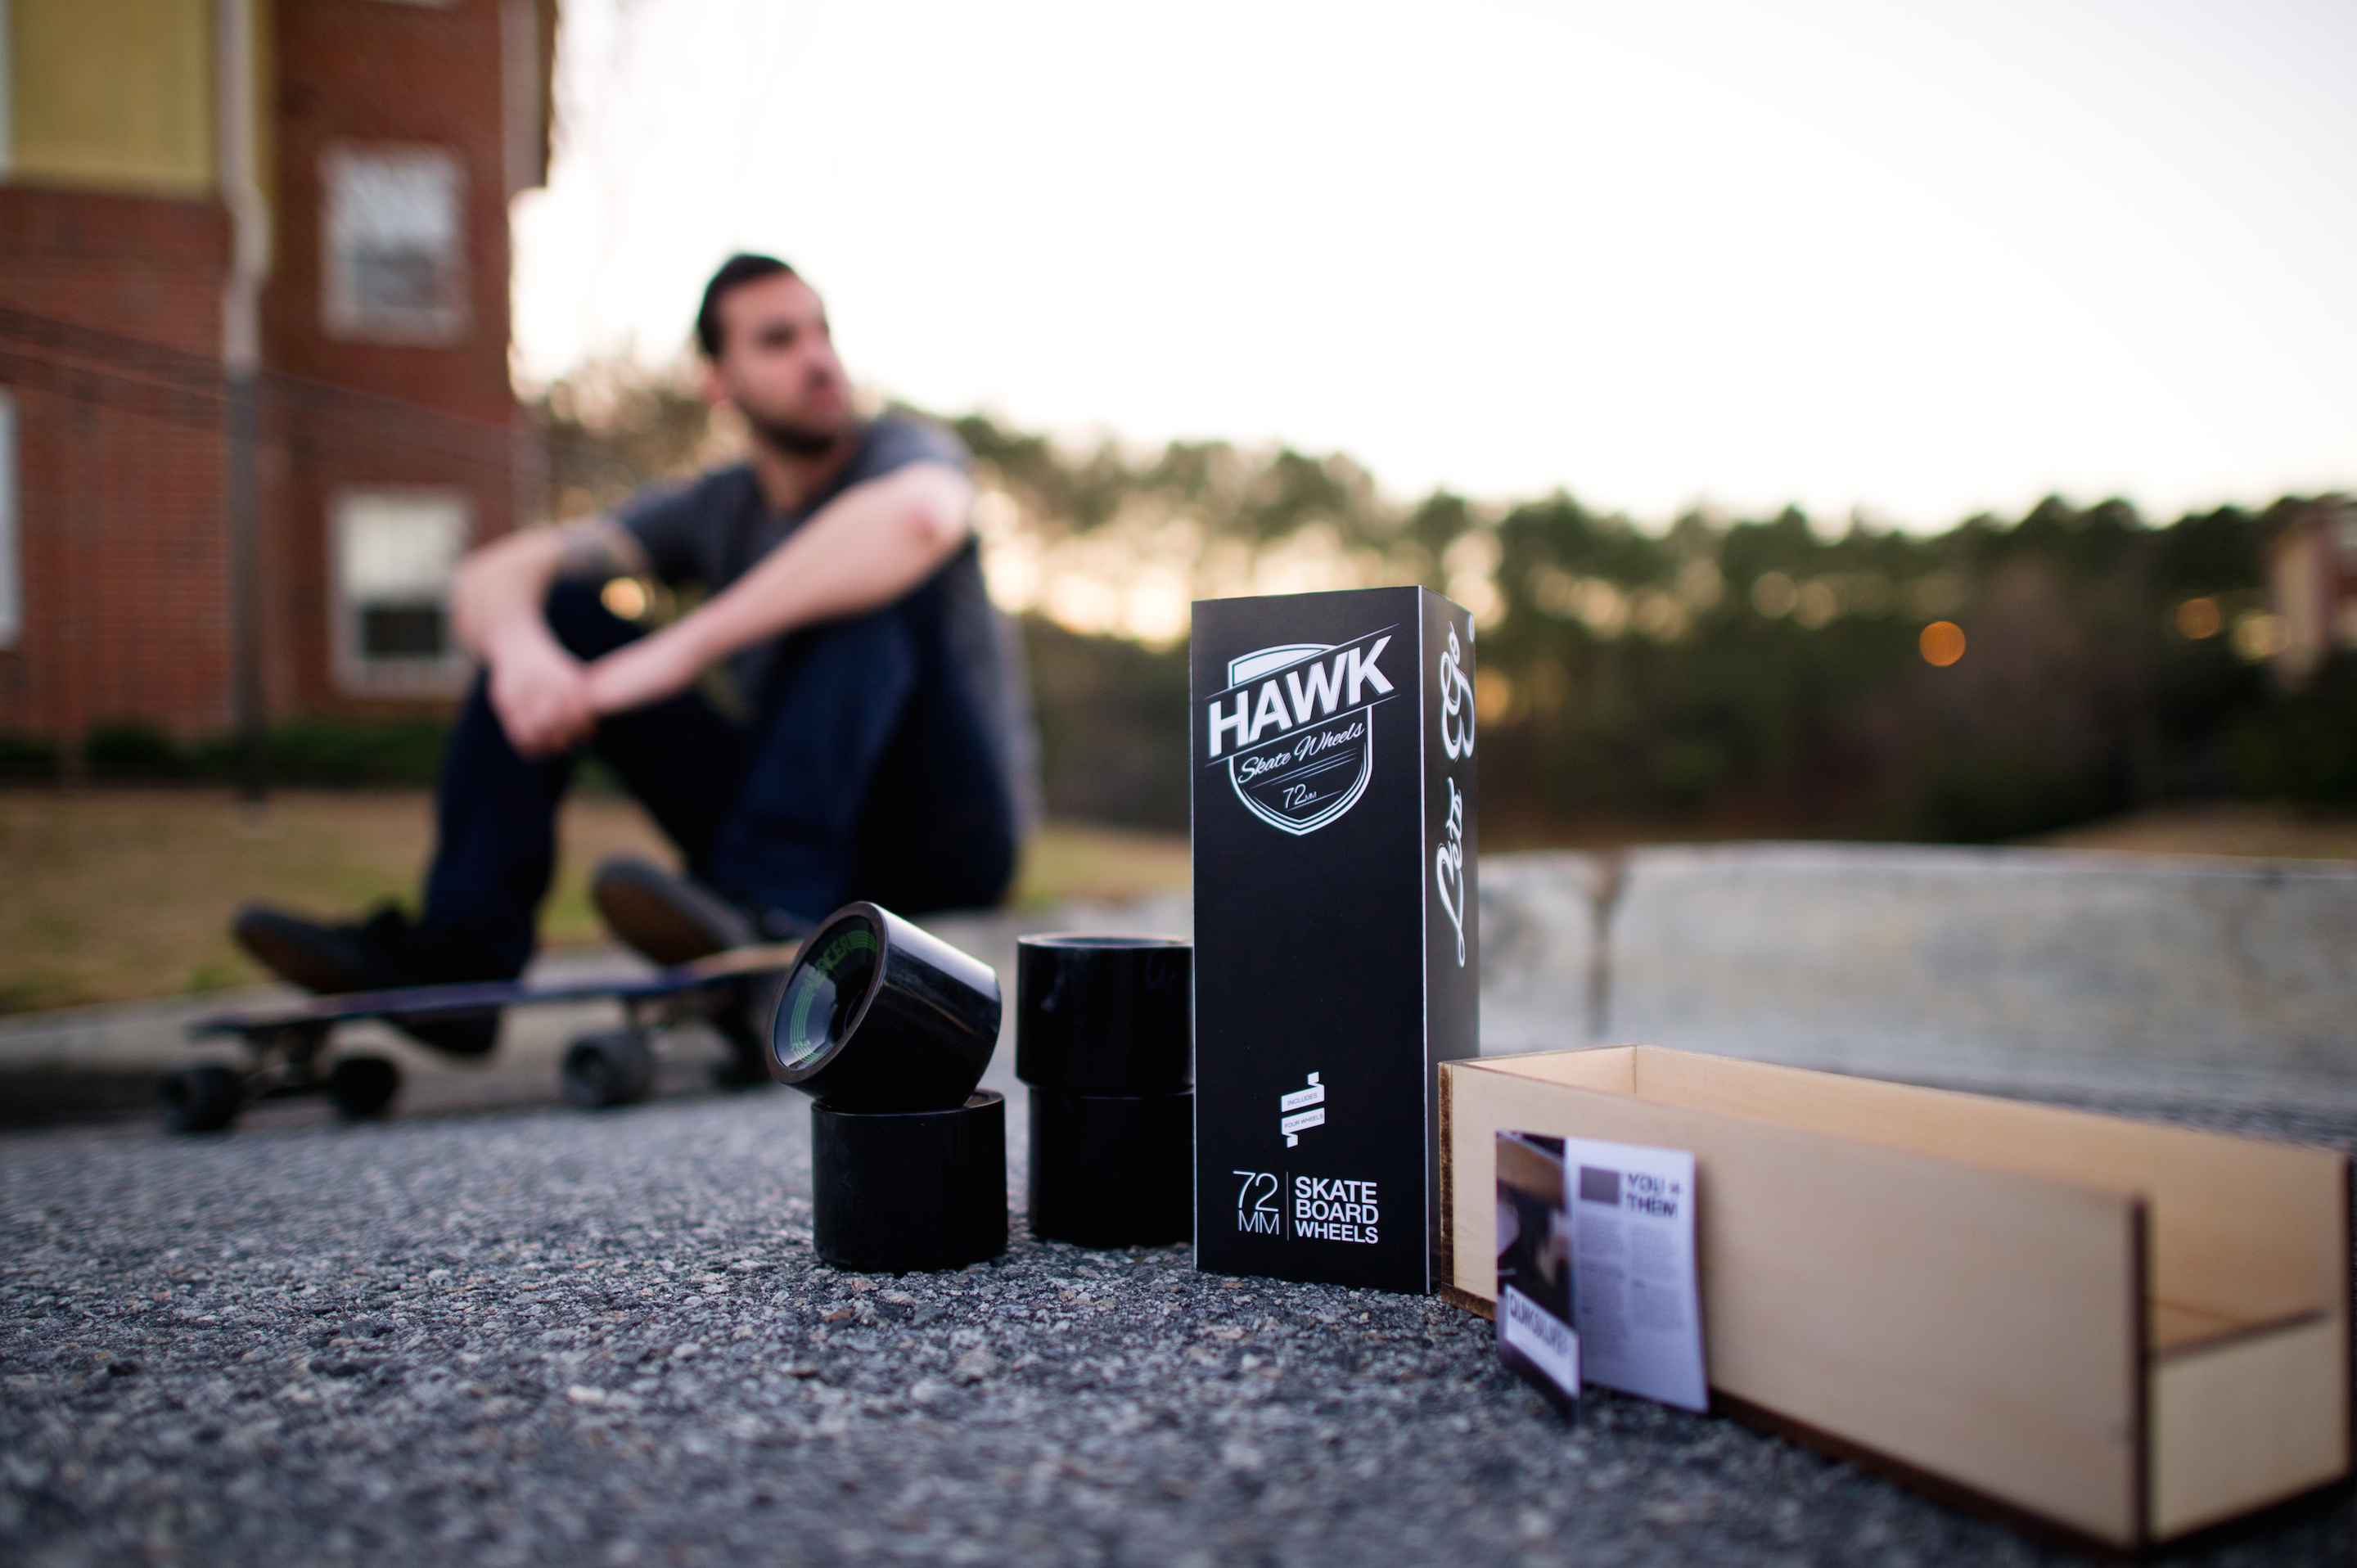 The experience doesn't end after purchase, every element of the packaging creates a story which surpasses just skateboarding. This handcrafted box and packaging is interactive with augmented reality.